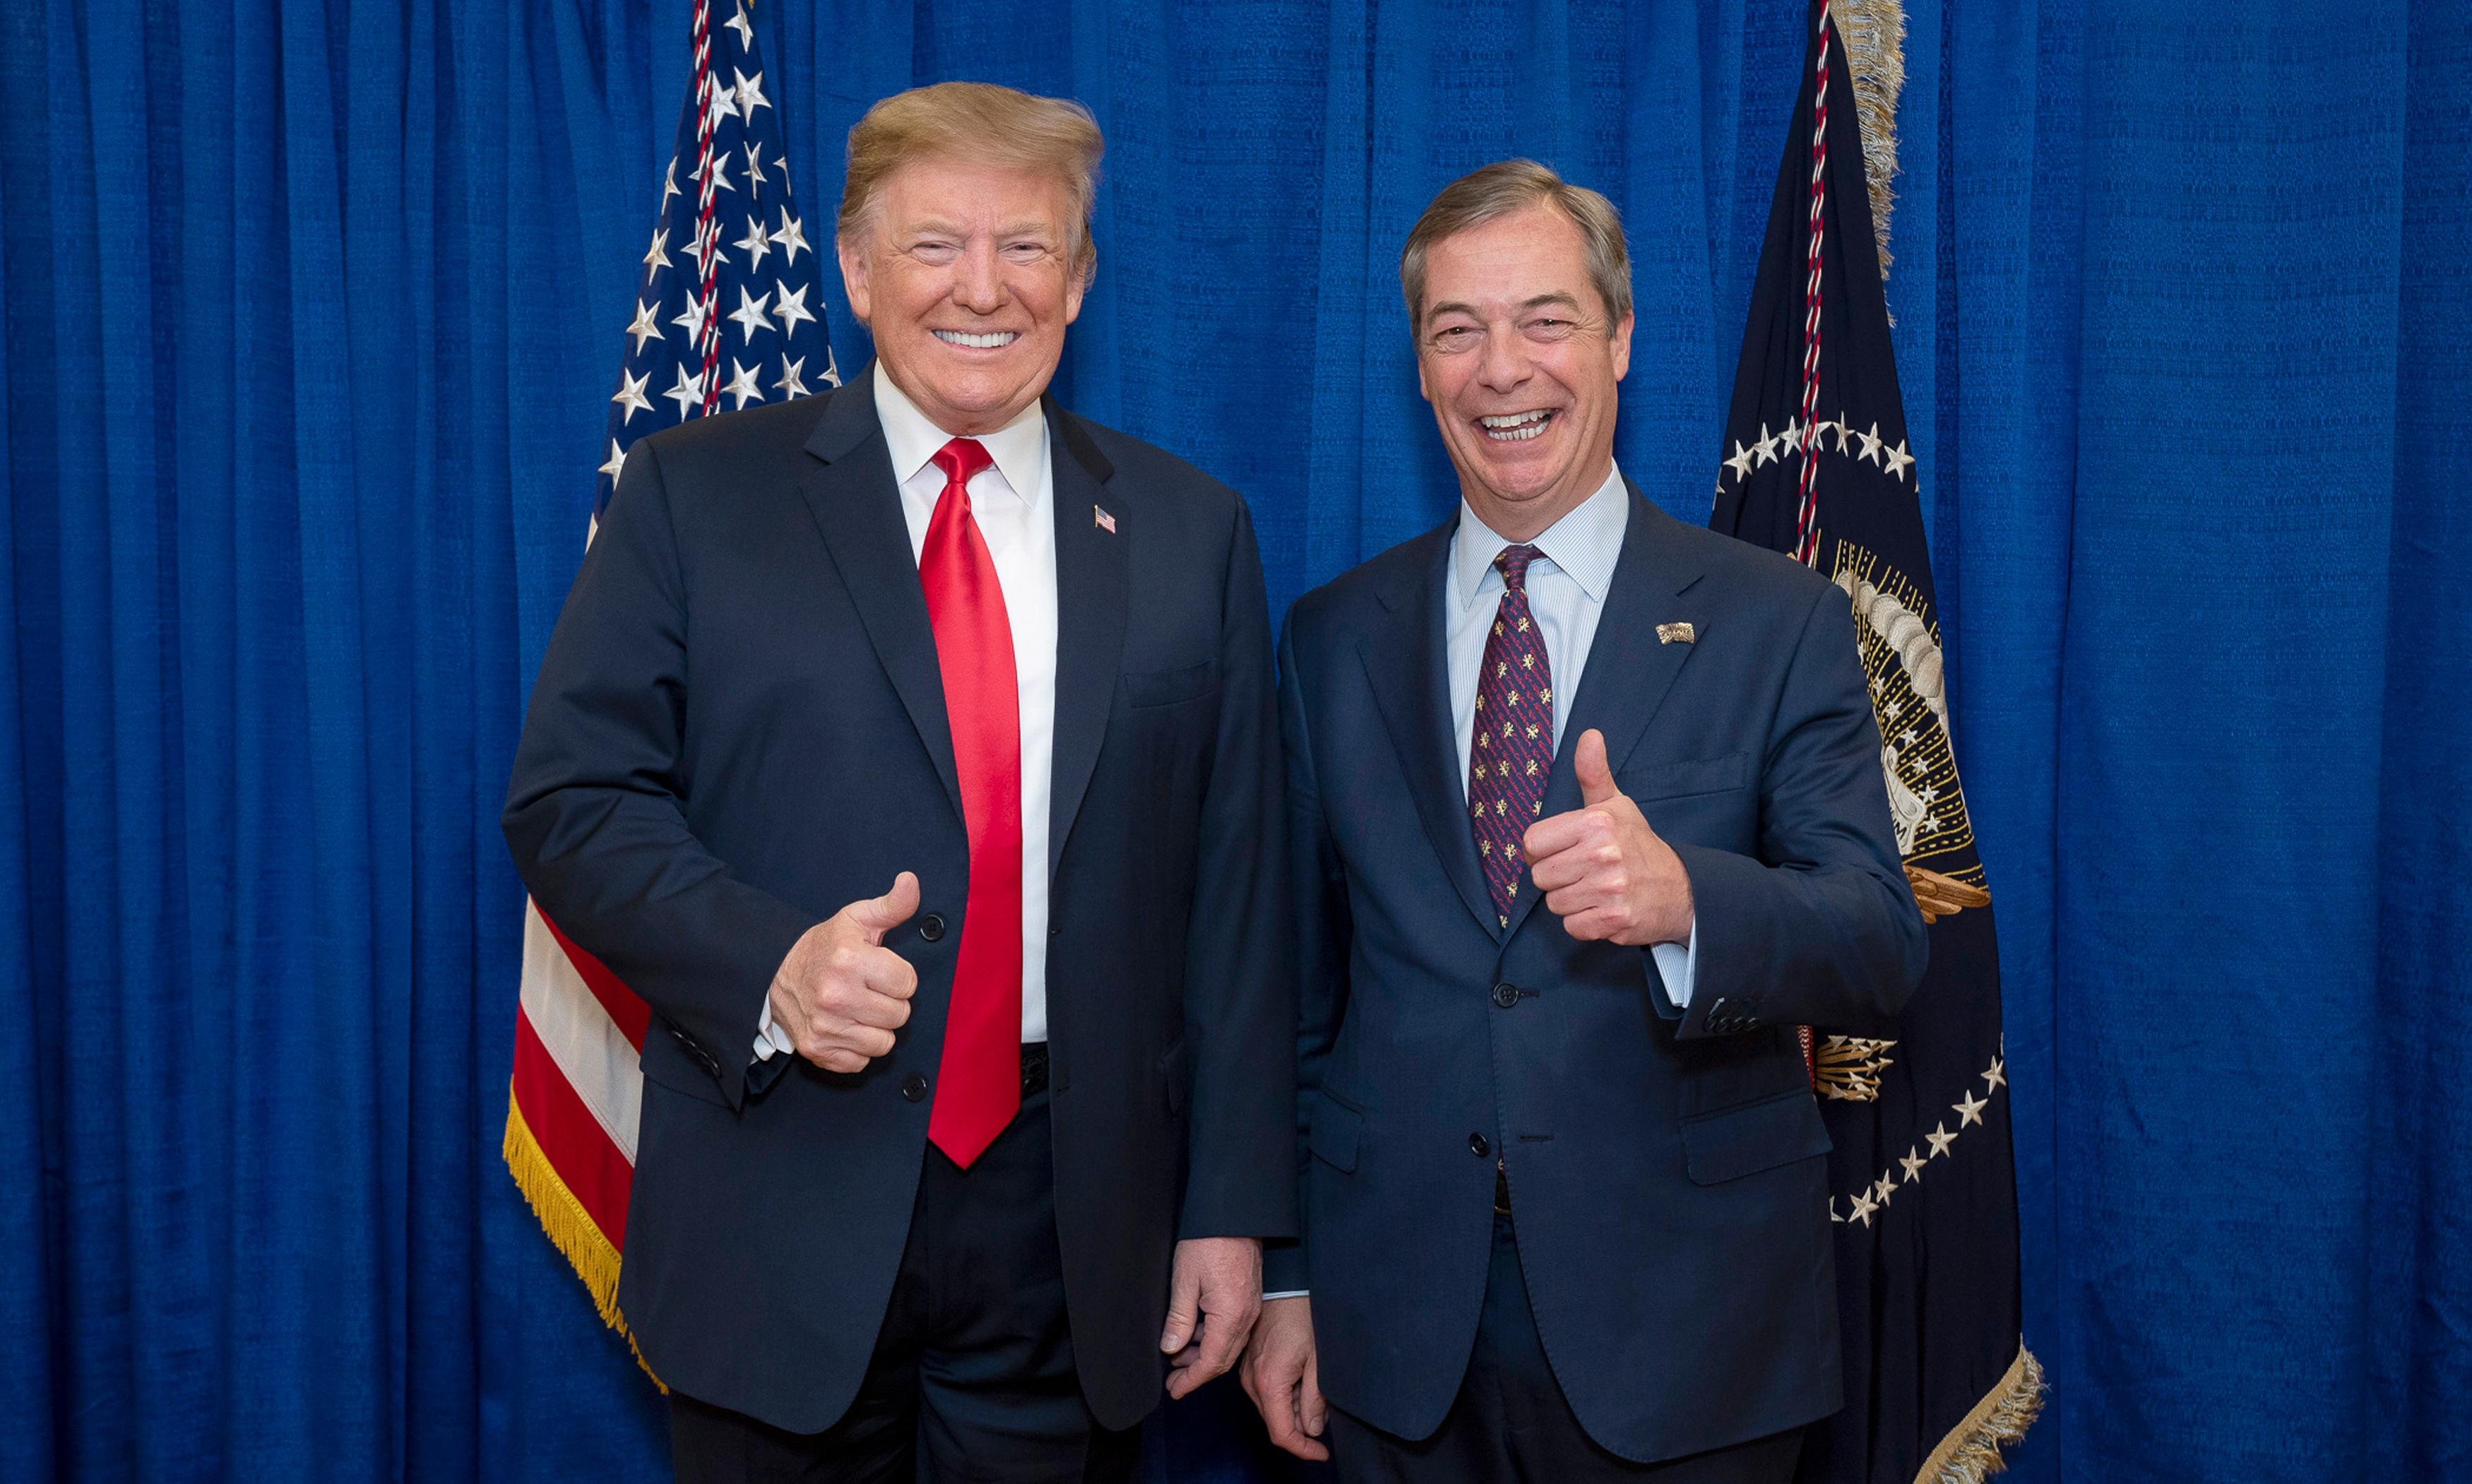 A chaotic Brexit is part of Trump's grand plan for Europe